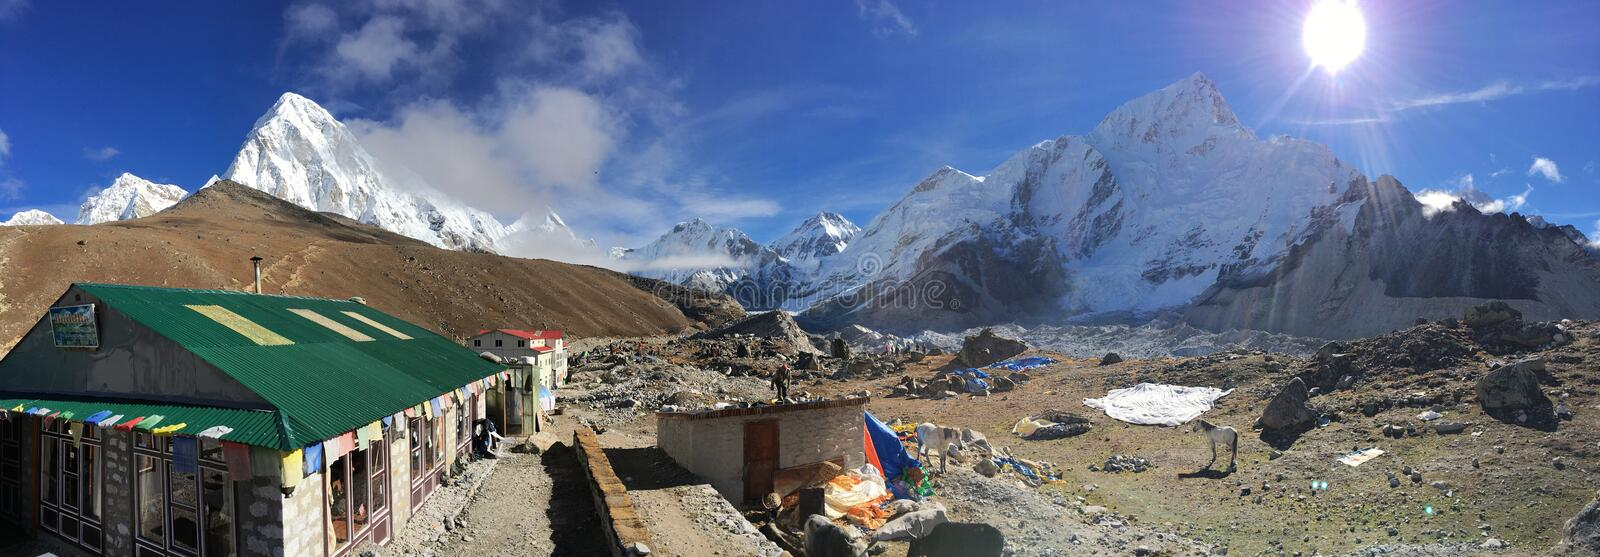 Buddha Lodge & Restaurant at Gorak Shep with snow capped Himalayan range scenery. The sun is shinnig bright and there are horses resting. This specific image is stock image